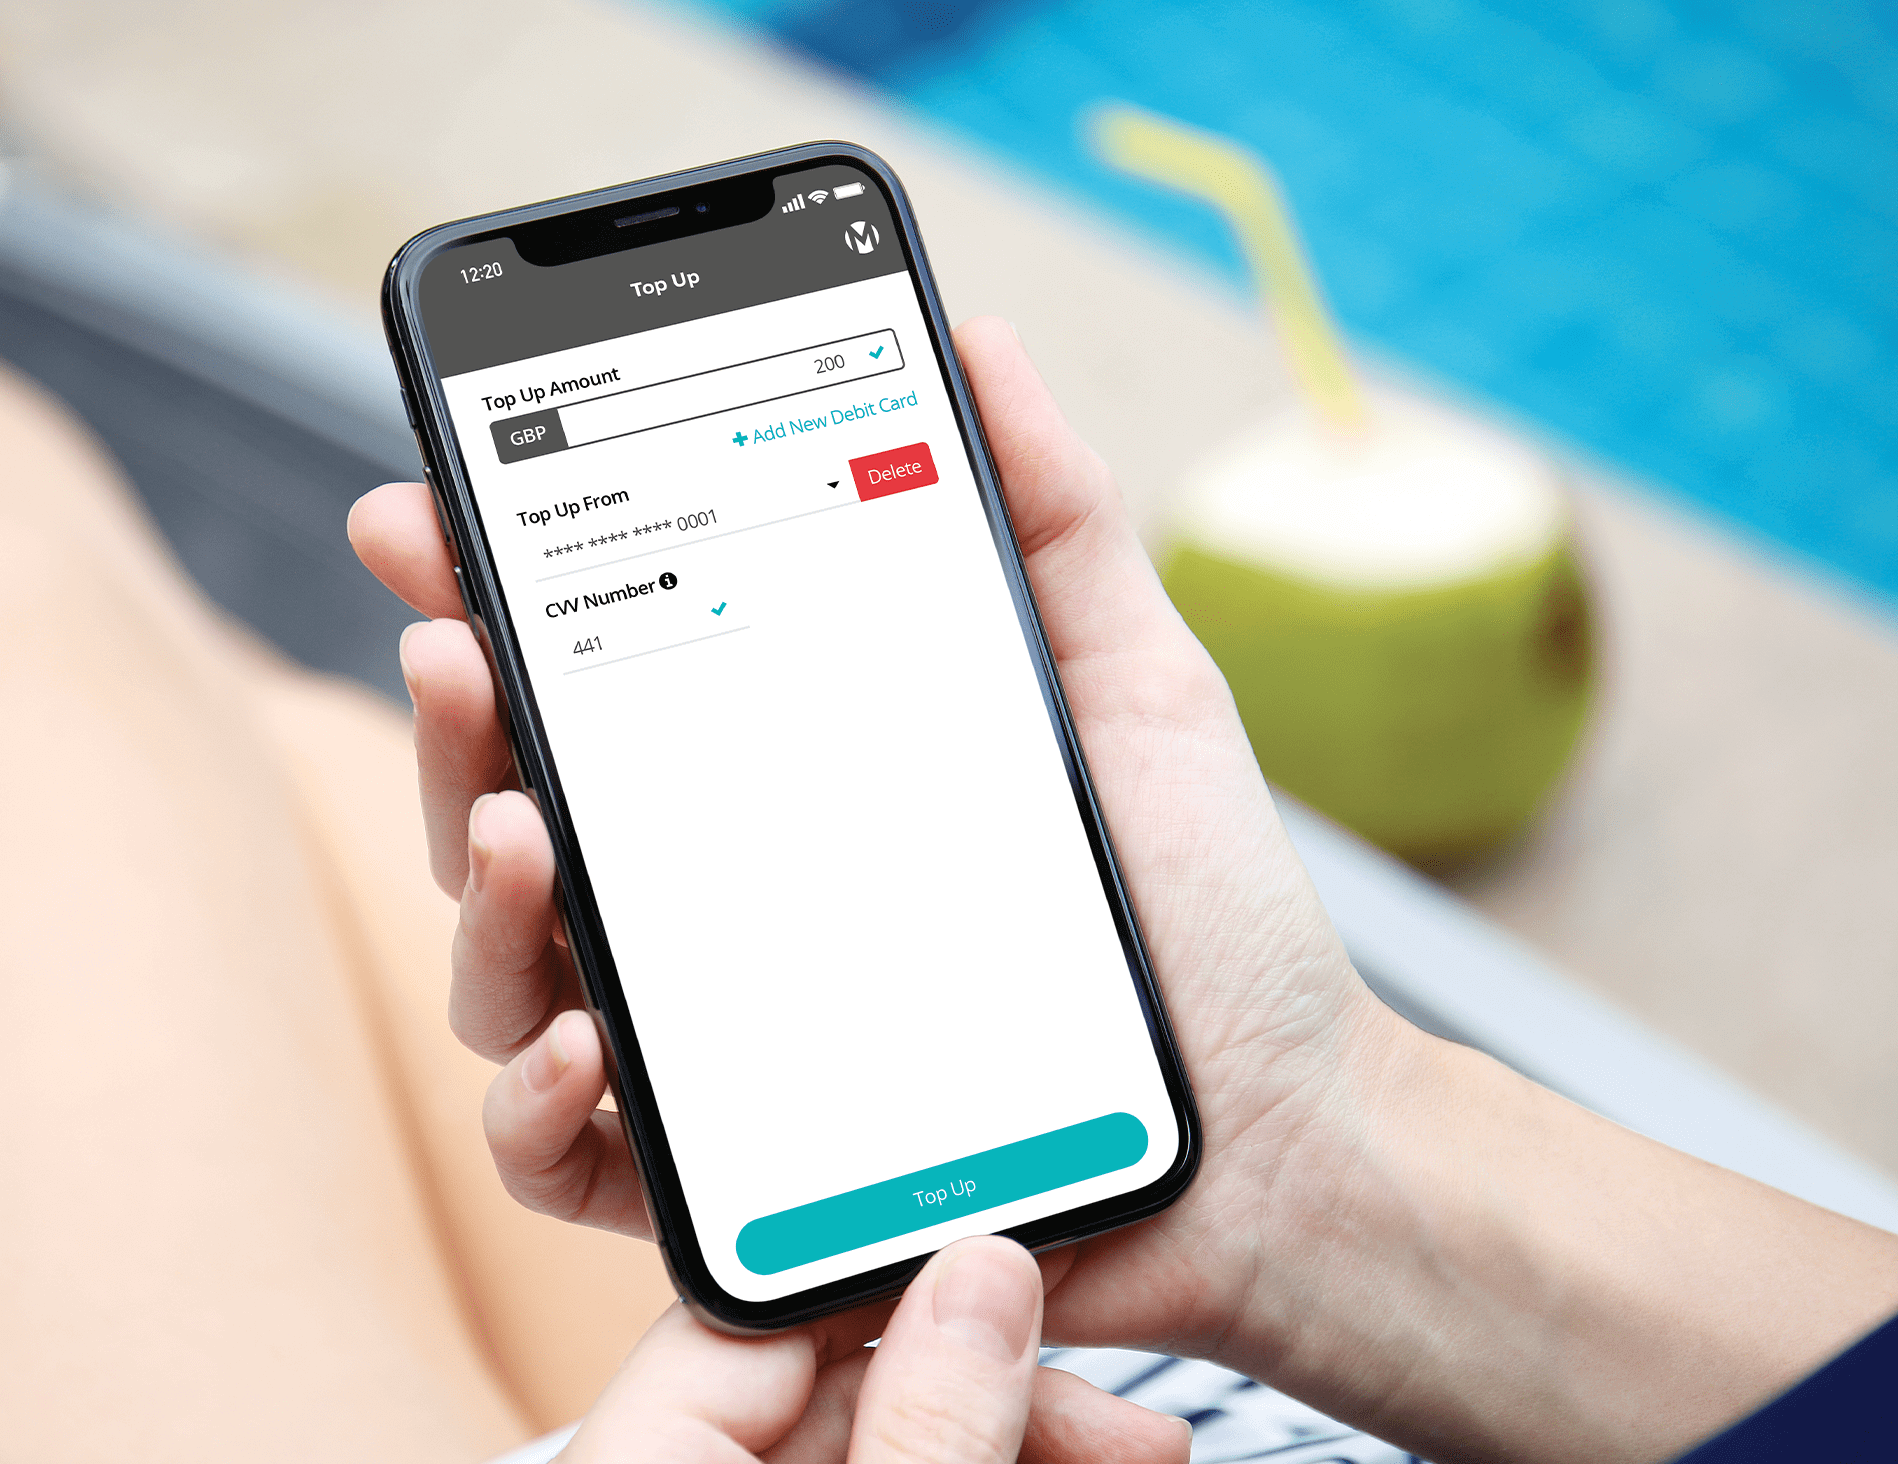 volopa app being used